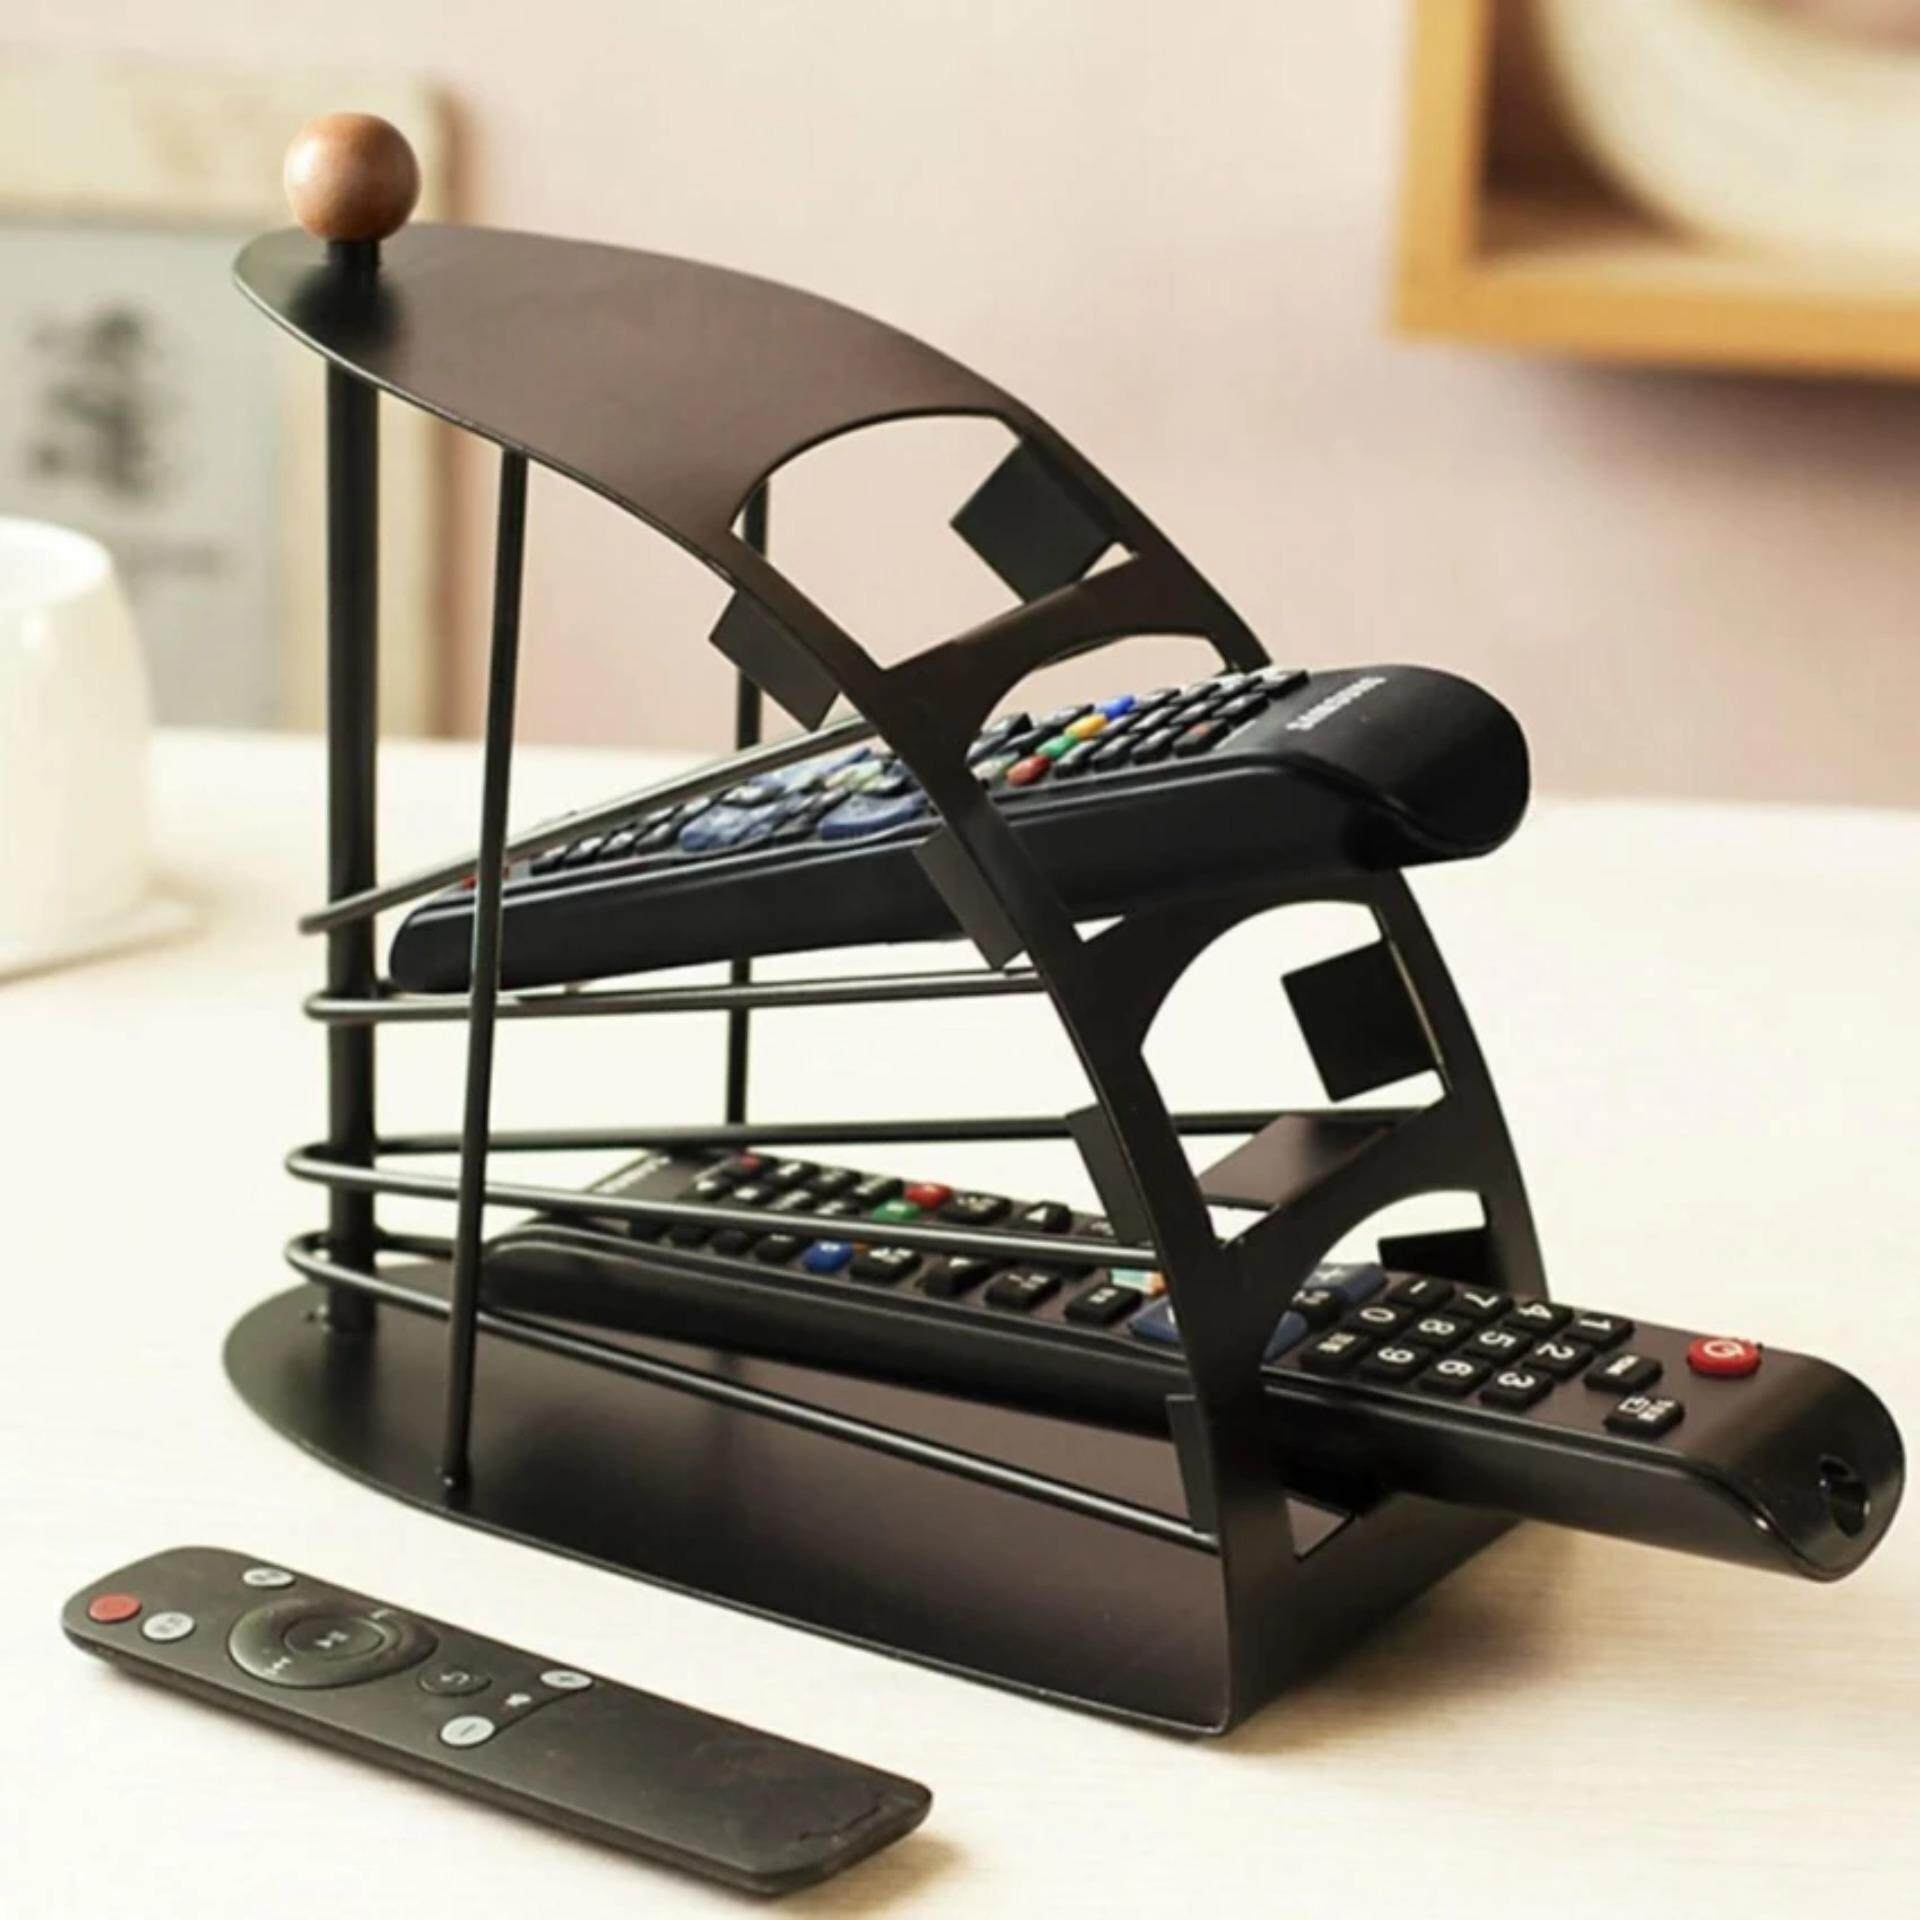 Remote Control Organizer.Hold Up 4 Controller.Household.Rack.Home.DIY